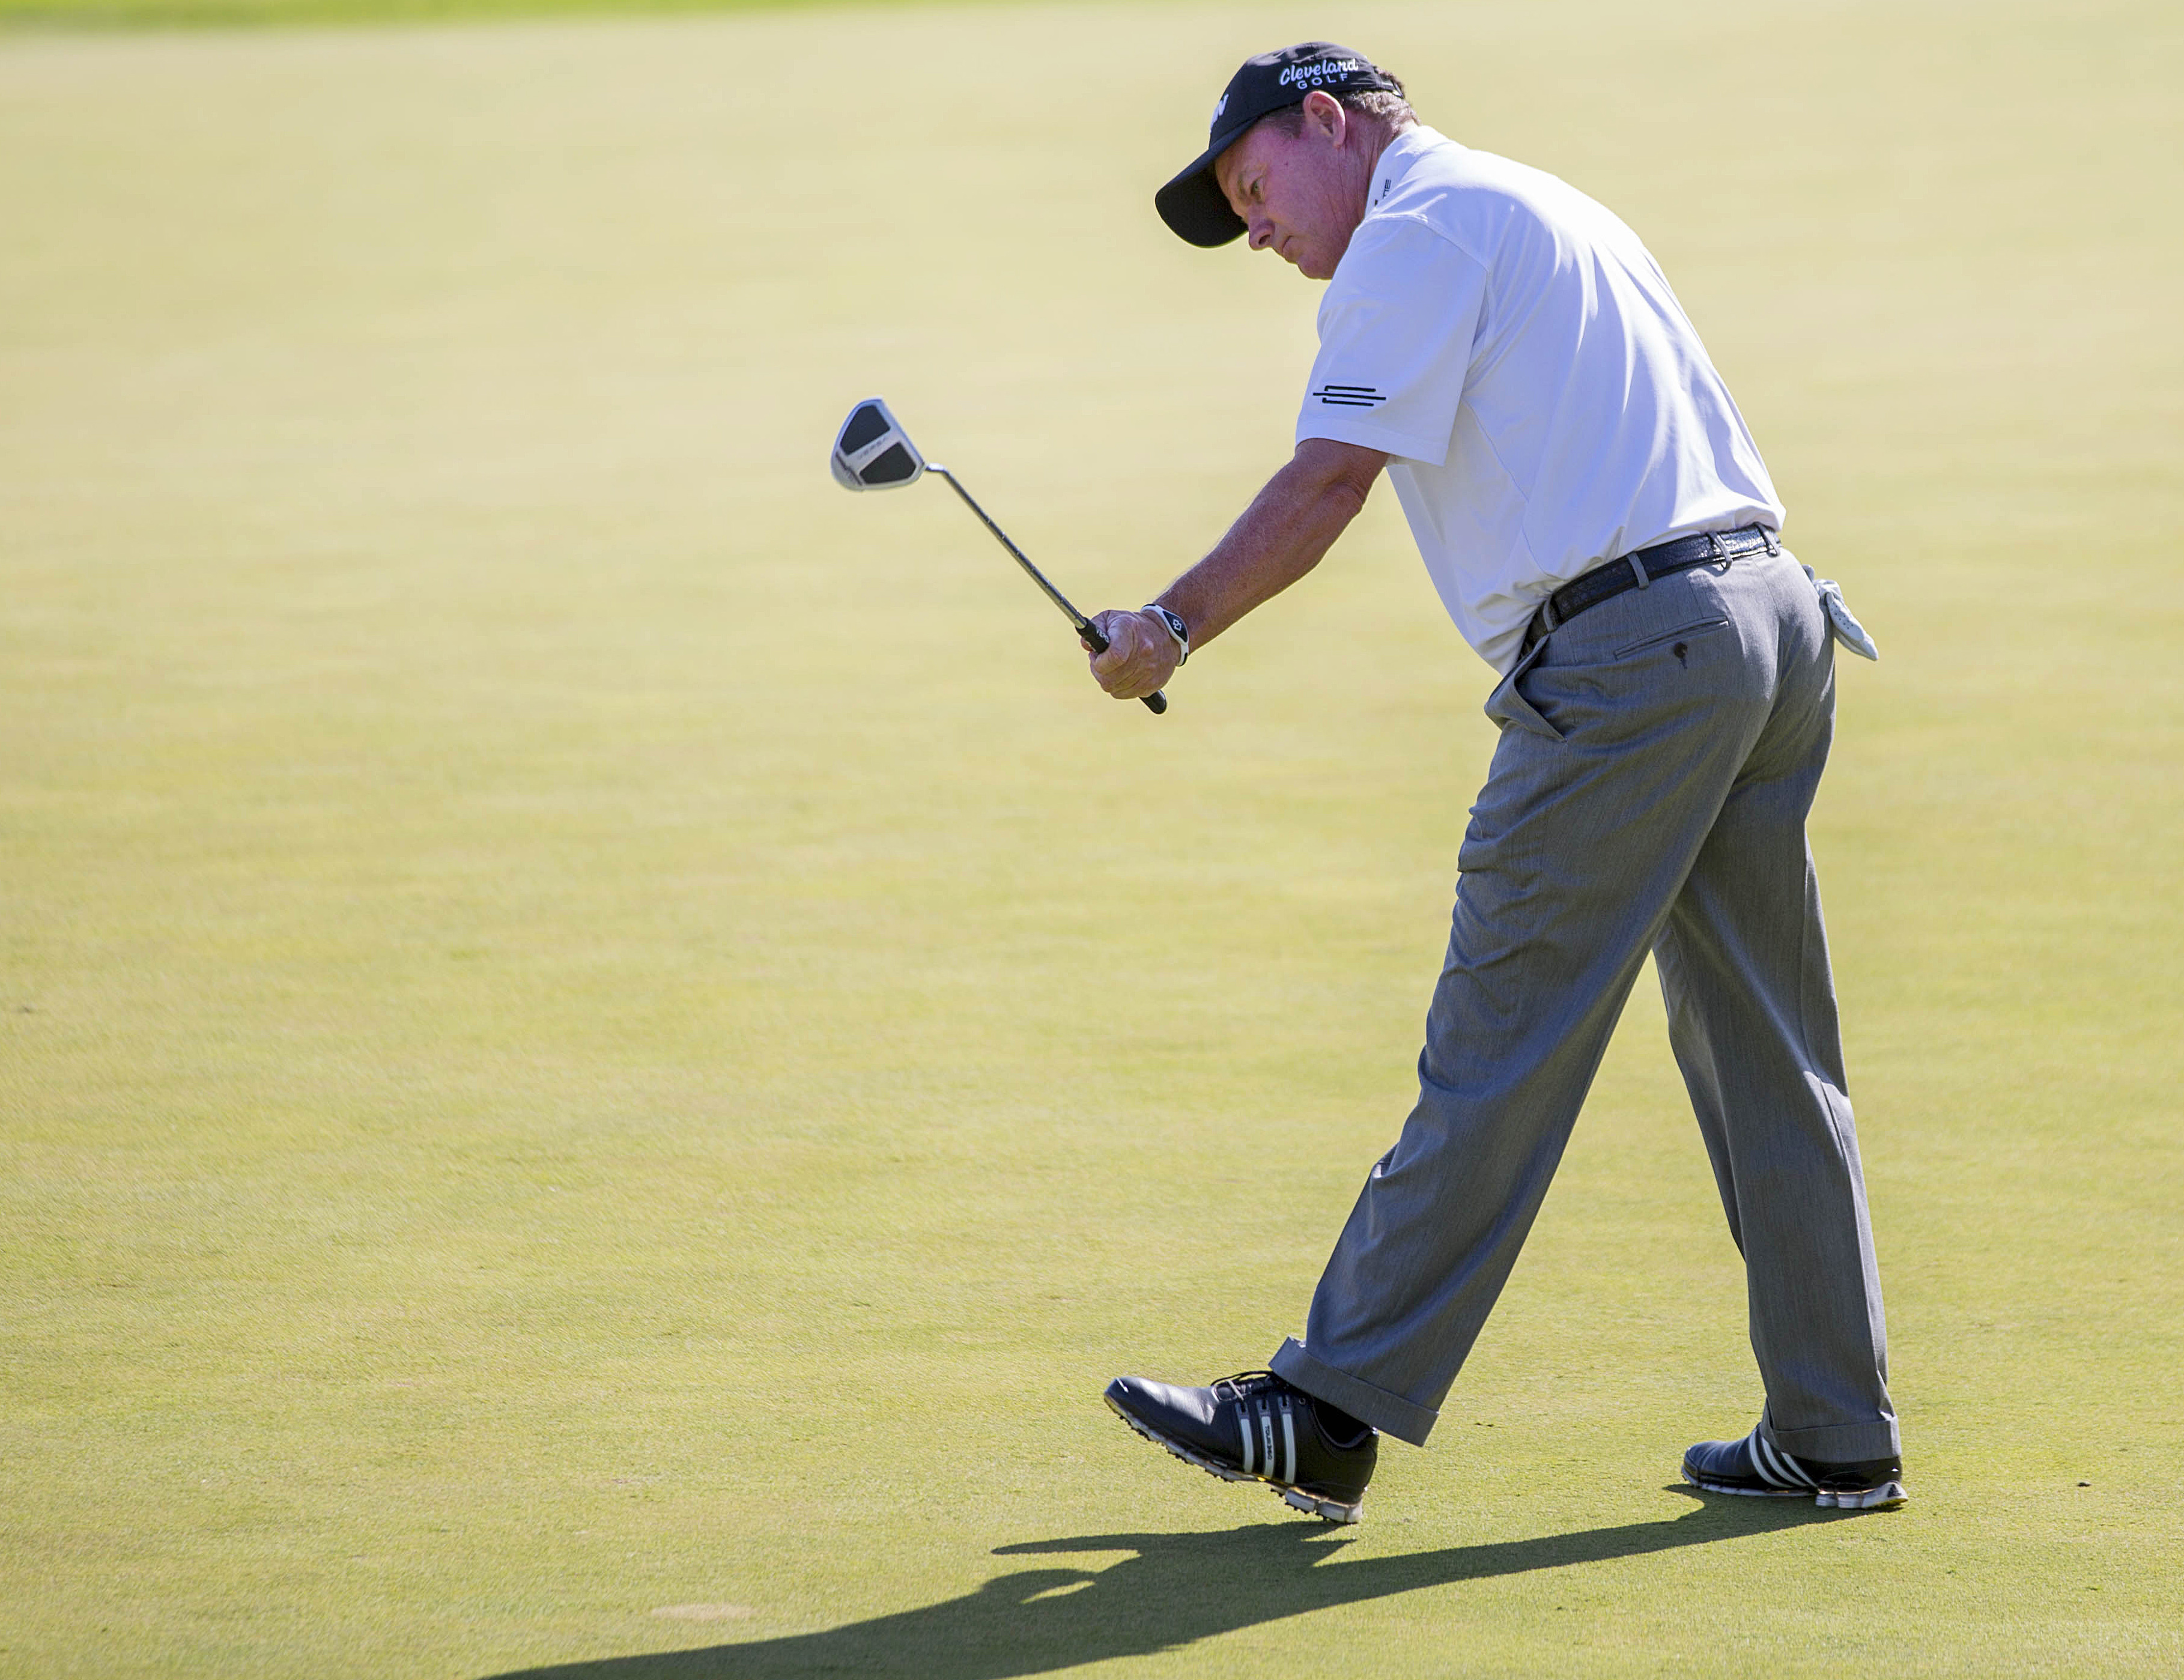 Bob Durant watches his winning putt on the 18th hole ending a playoff with Miguel Angel Jimenez during the final round of the 3M Championship golf tournament in Blaine, Minn., Sunday, Aug. 7, 2016. (AP Photo/Andy Clayton-King)